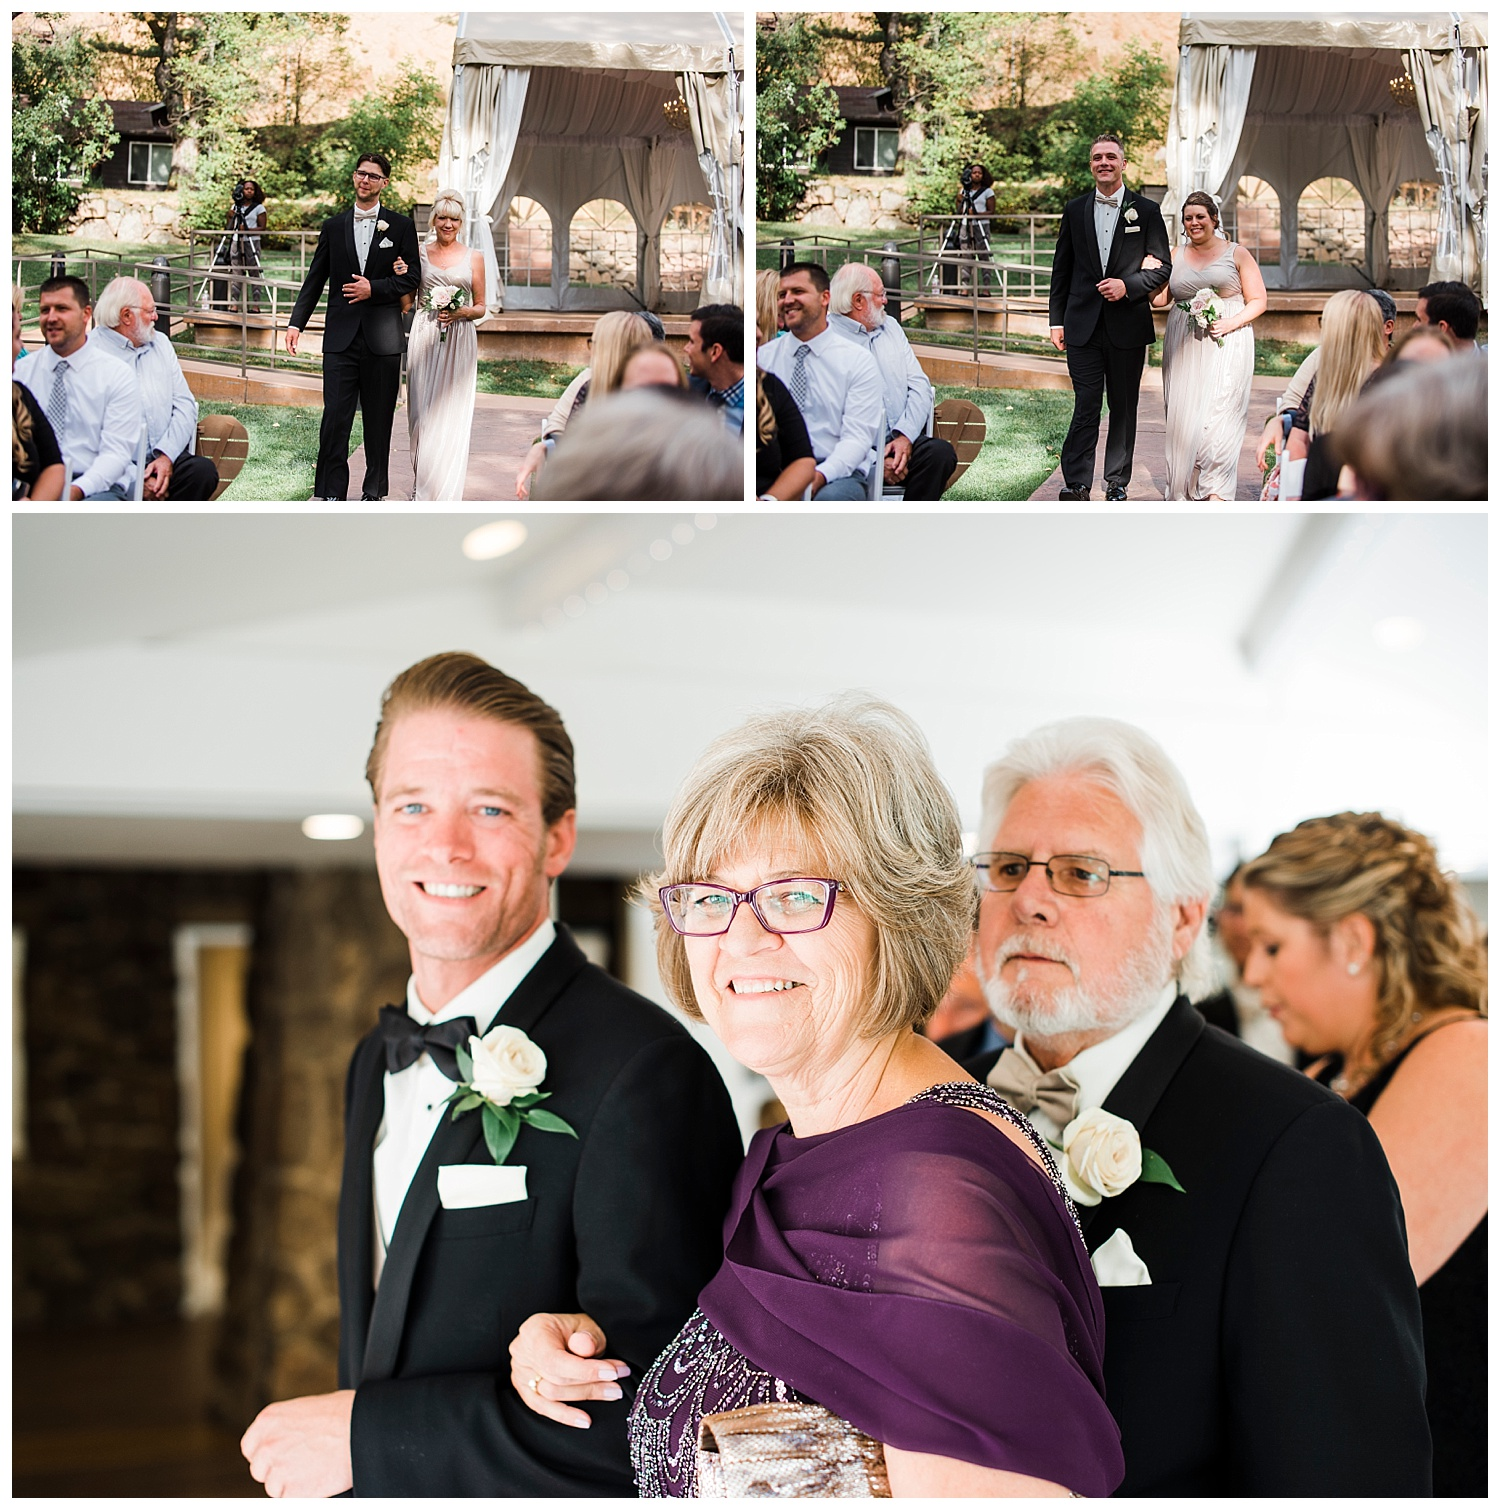 Wedgewood_Boulder_Creek_Wedding_Venue_Colorado_Photographer_Apollo_Fields_032.jpg